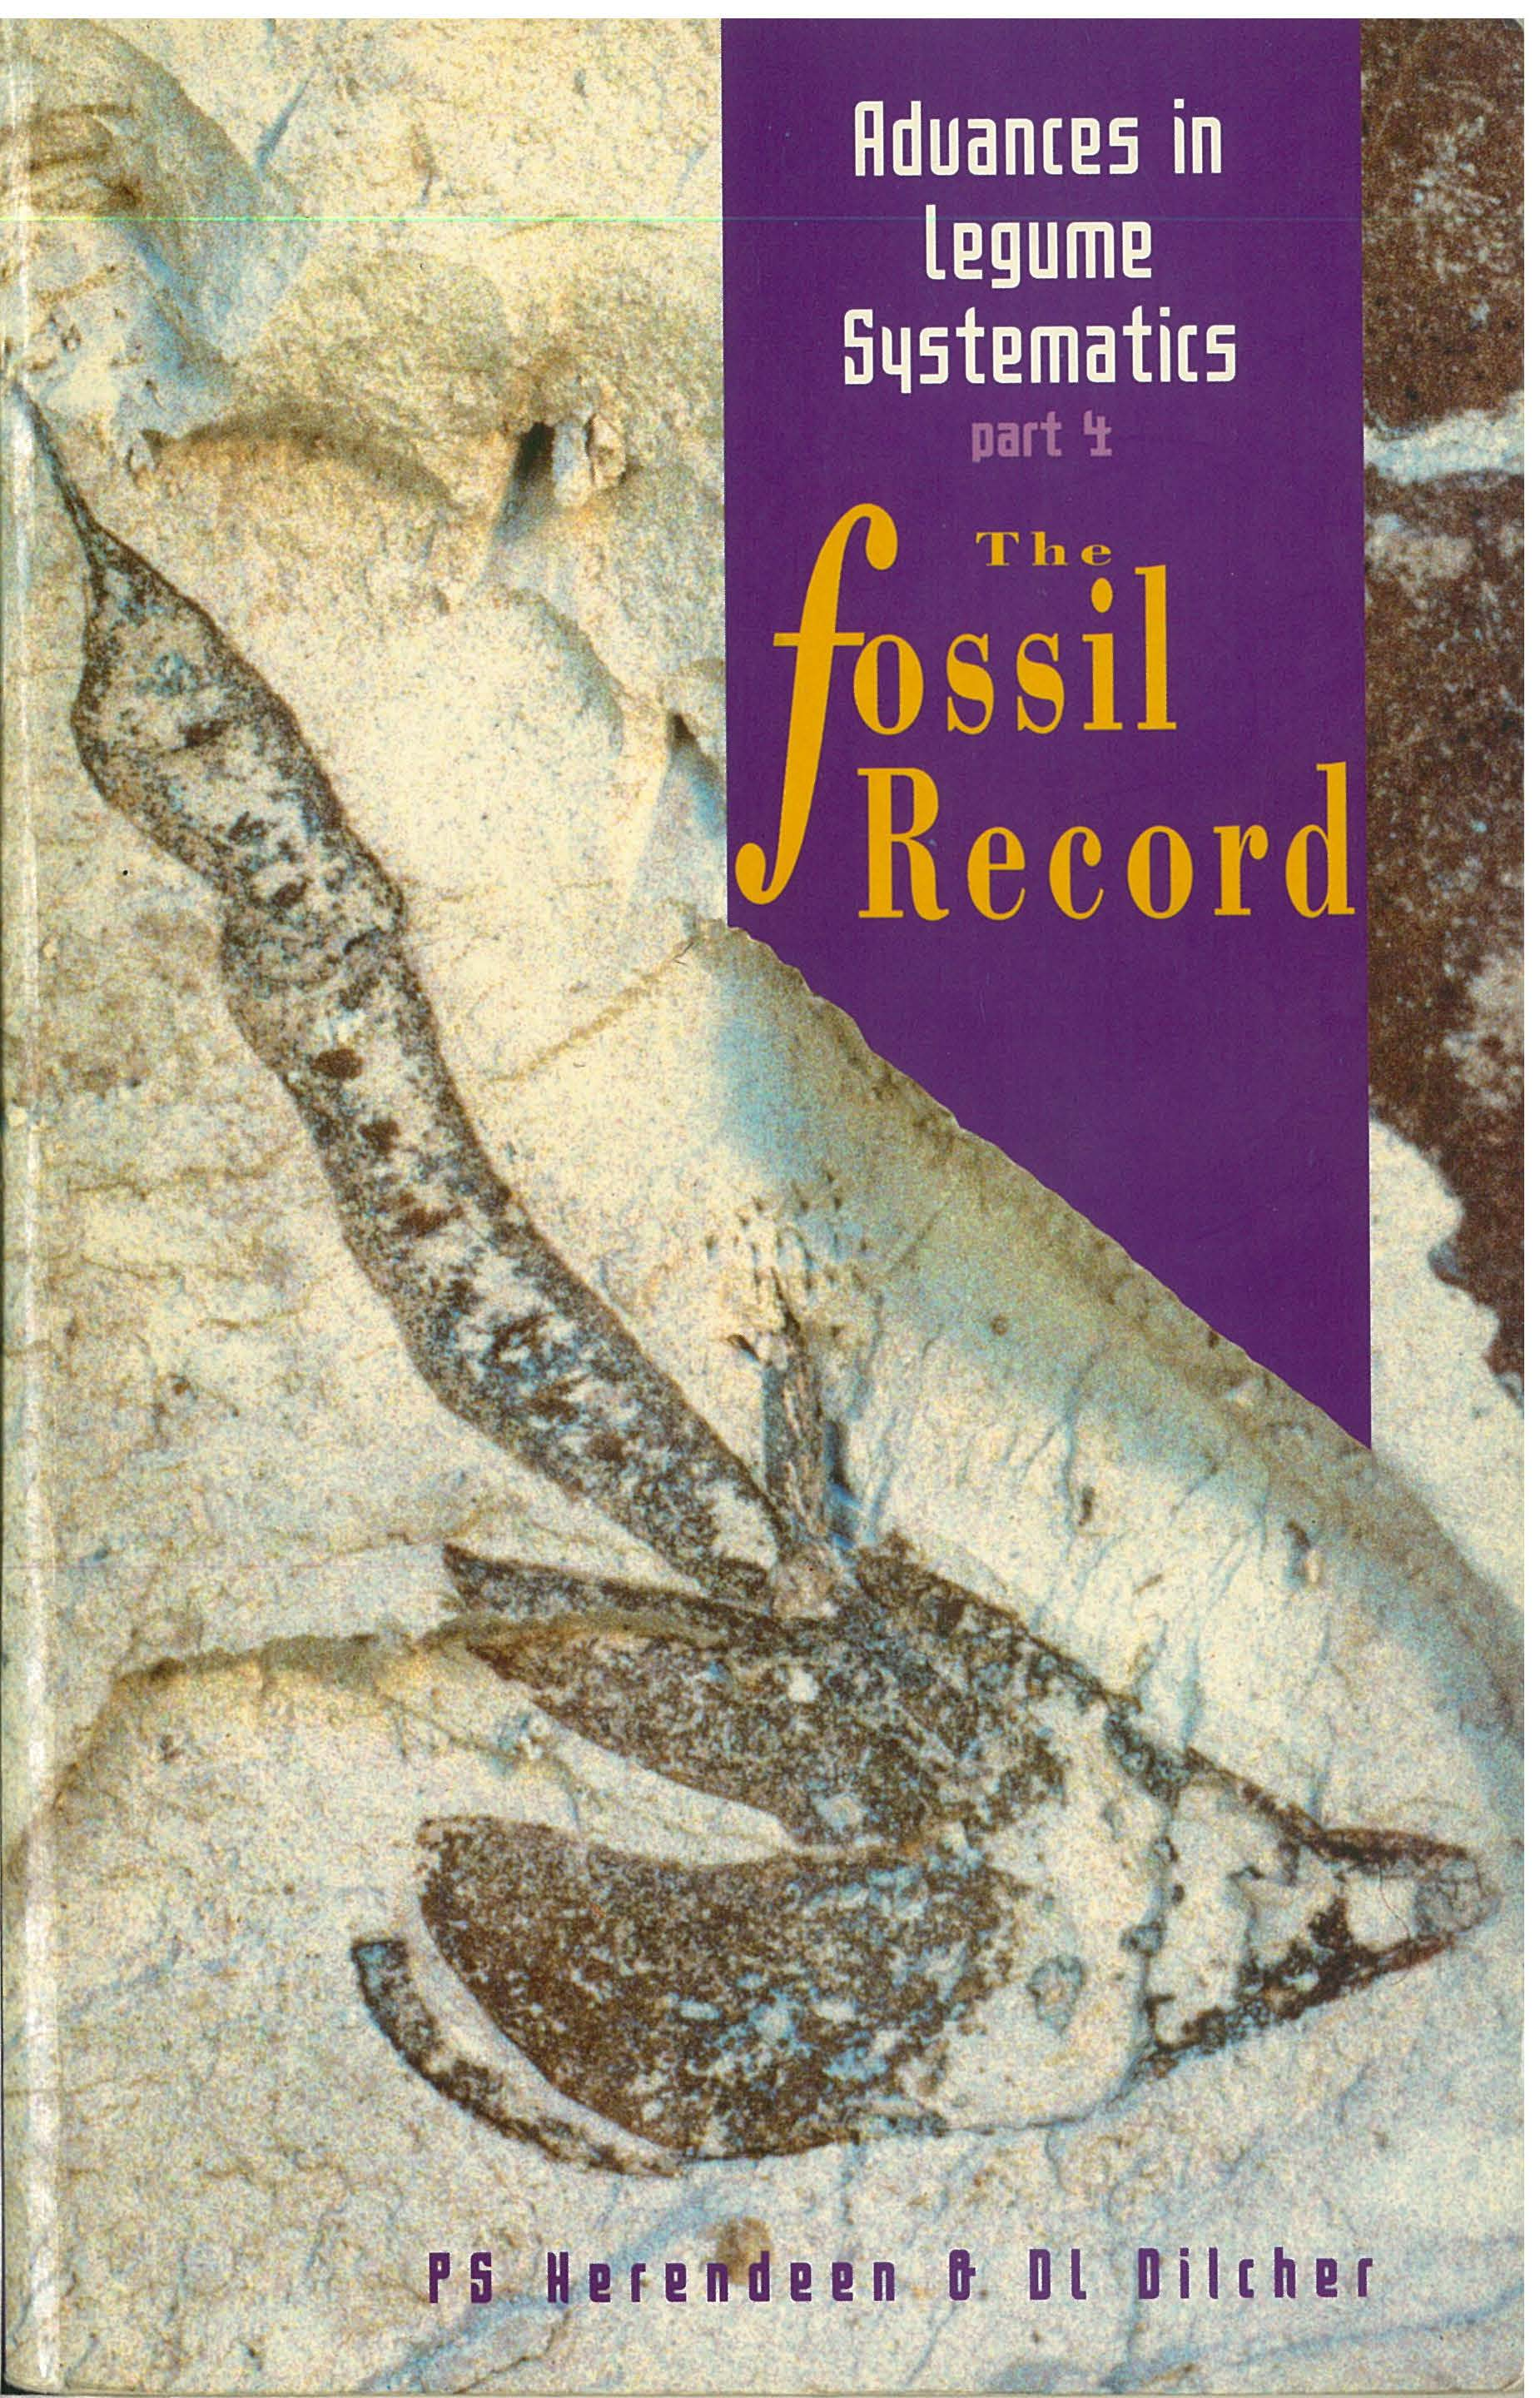 Advance in Legume Systematics part 4 The fossil Record